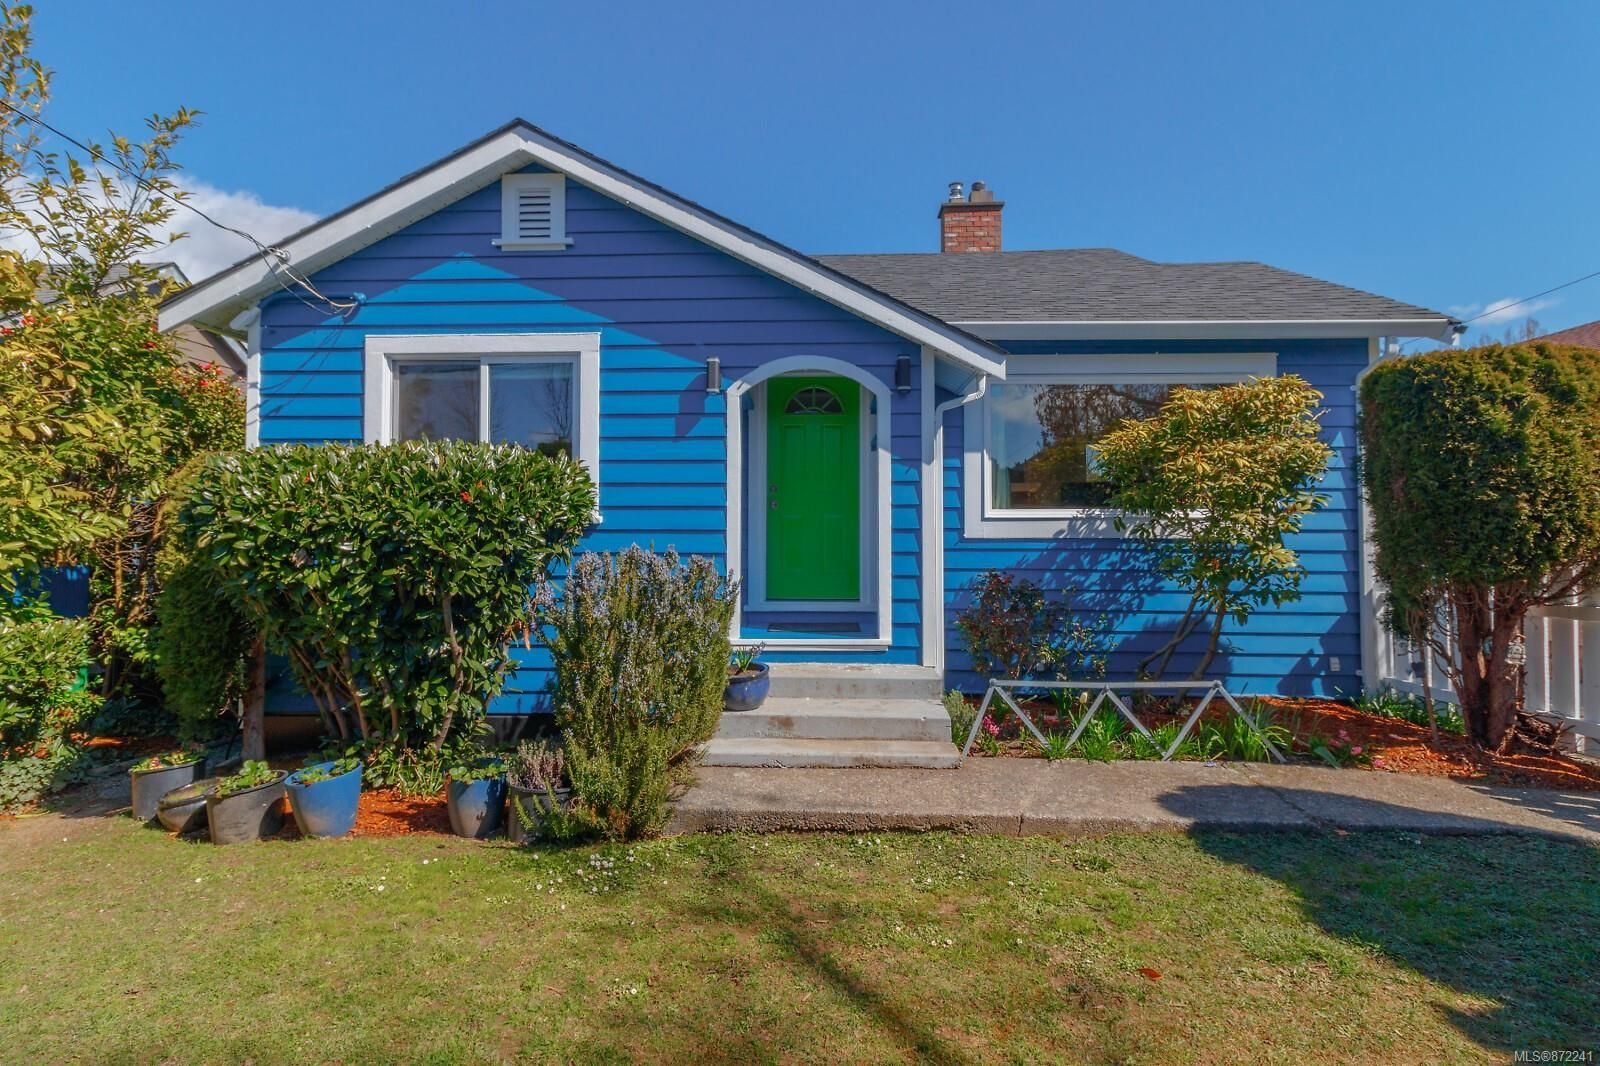 Main Photo: 212 Obed Ave in : SW Gorge House for sale (Saanich West)  : MLS®# 872241